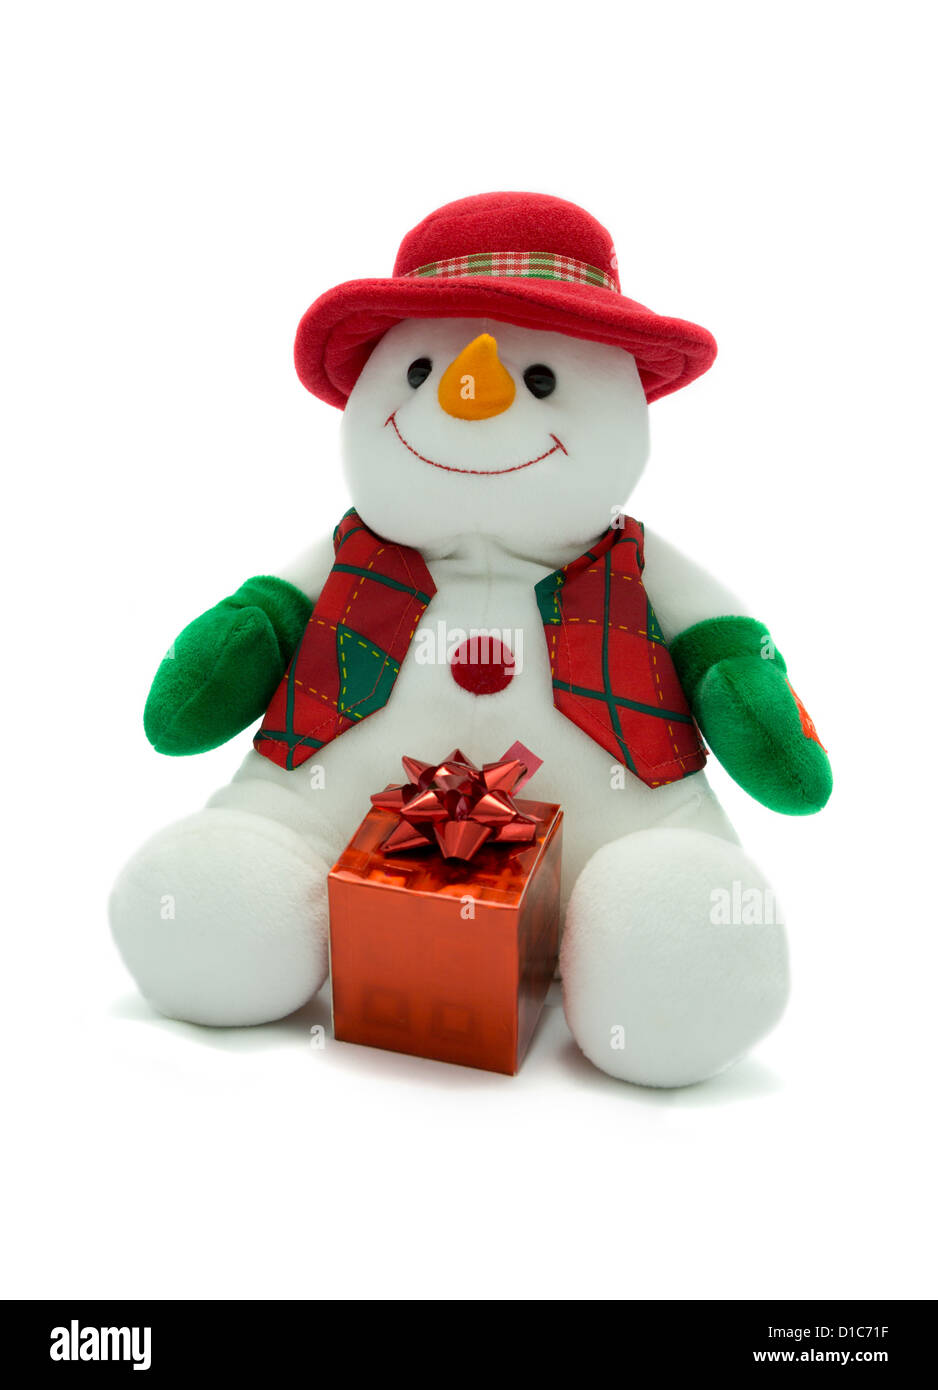 Christmas Snowman with present - Stock Image